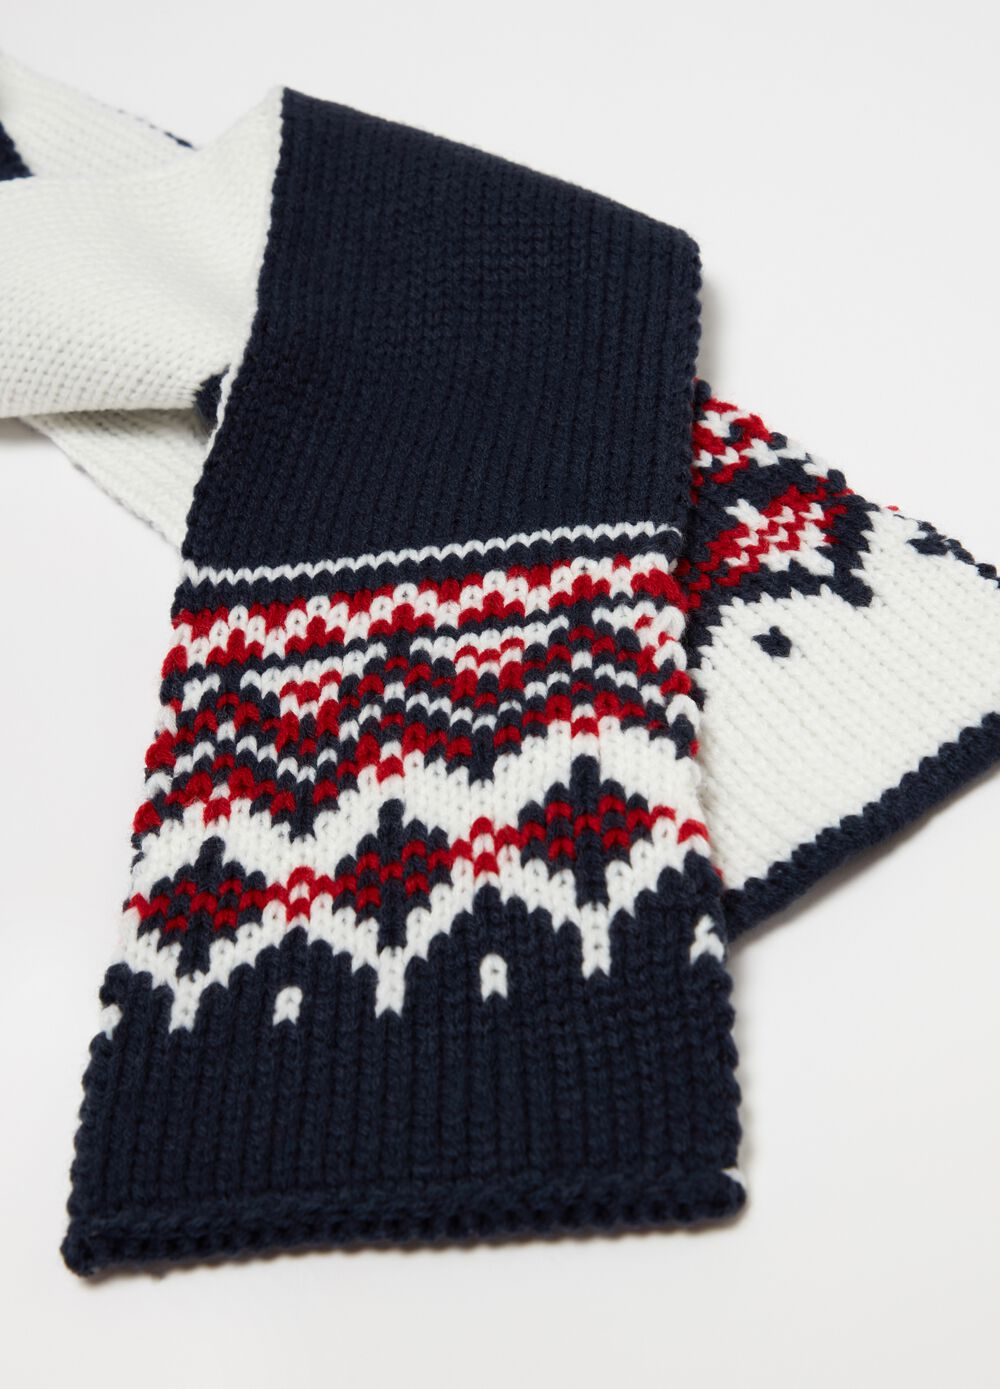 Long knit socks with geometric embroidery